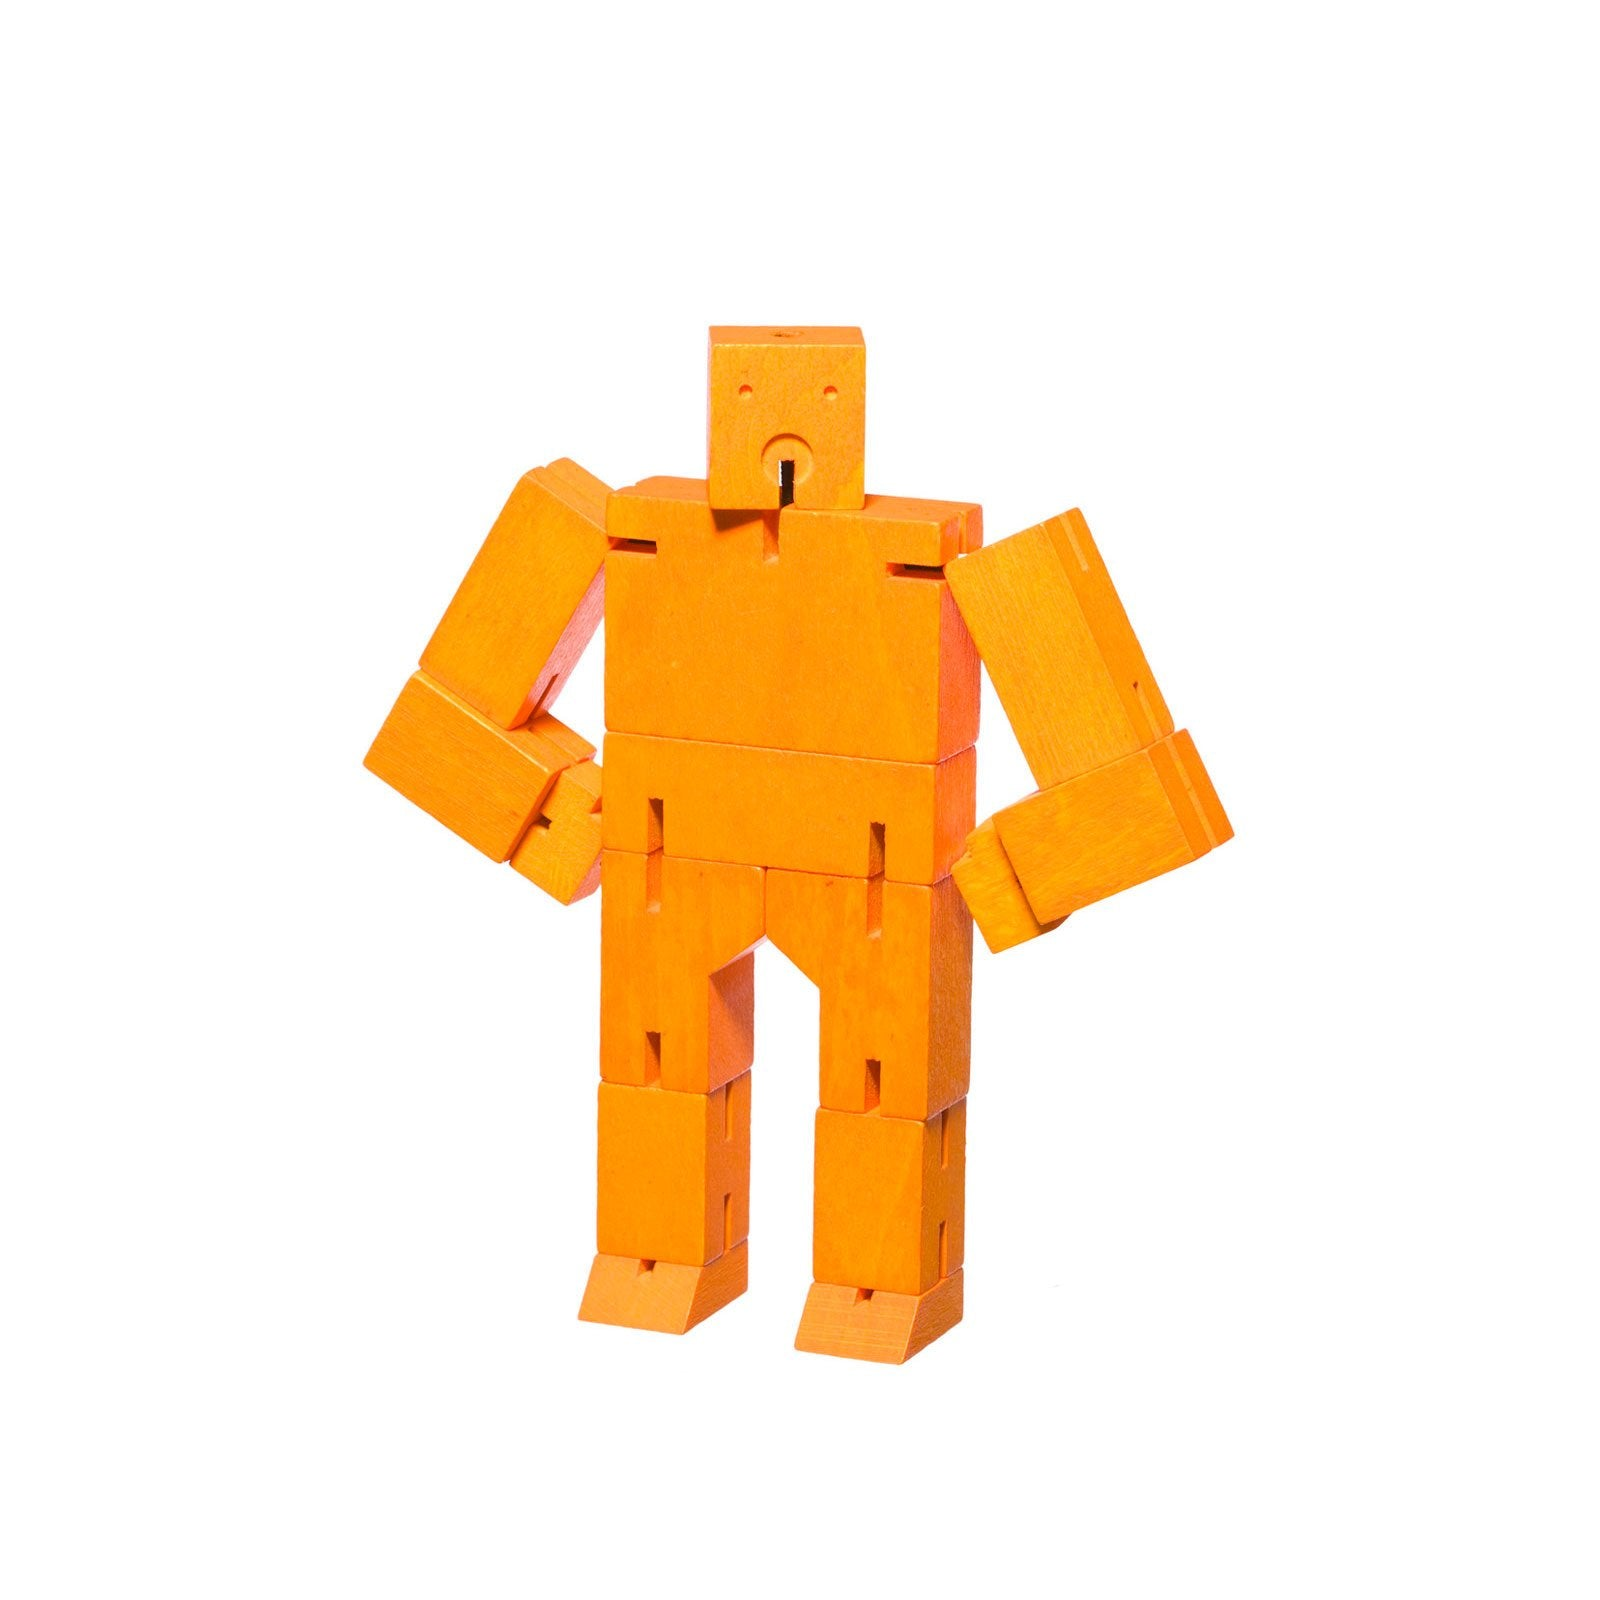 Cubebots David Weeks Studio Activity Toys Micro / Orange at Little Earth Nest Eco Shop